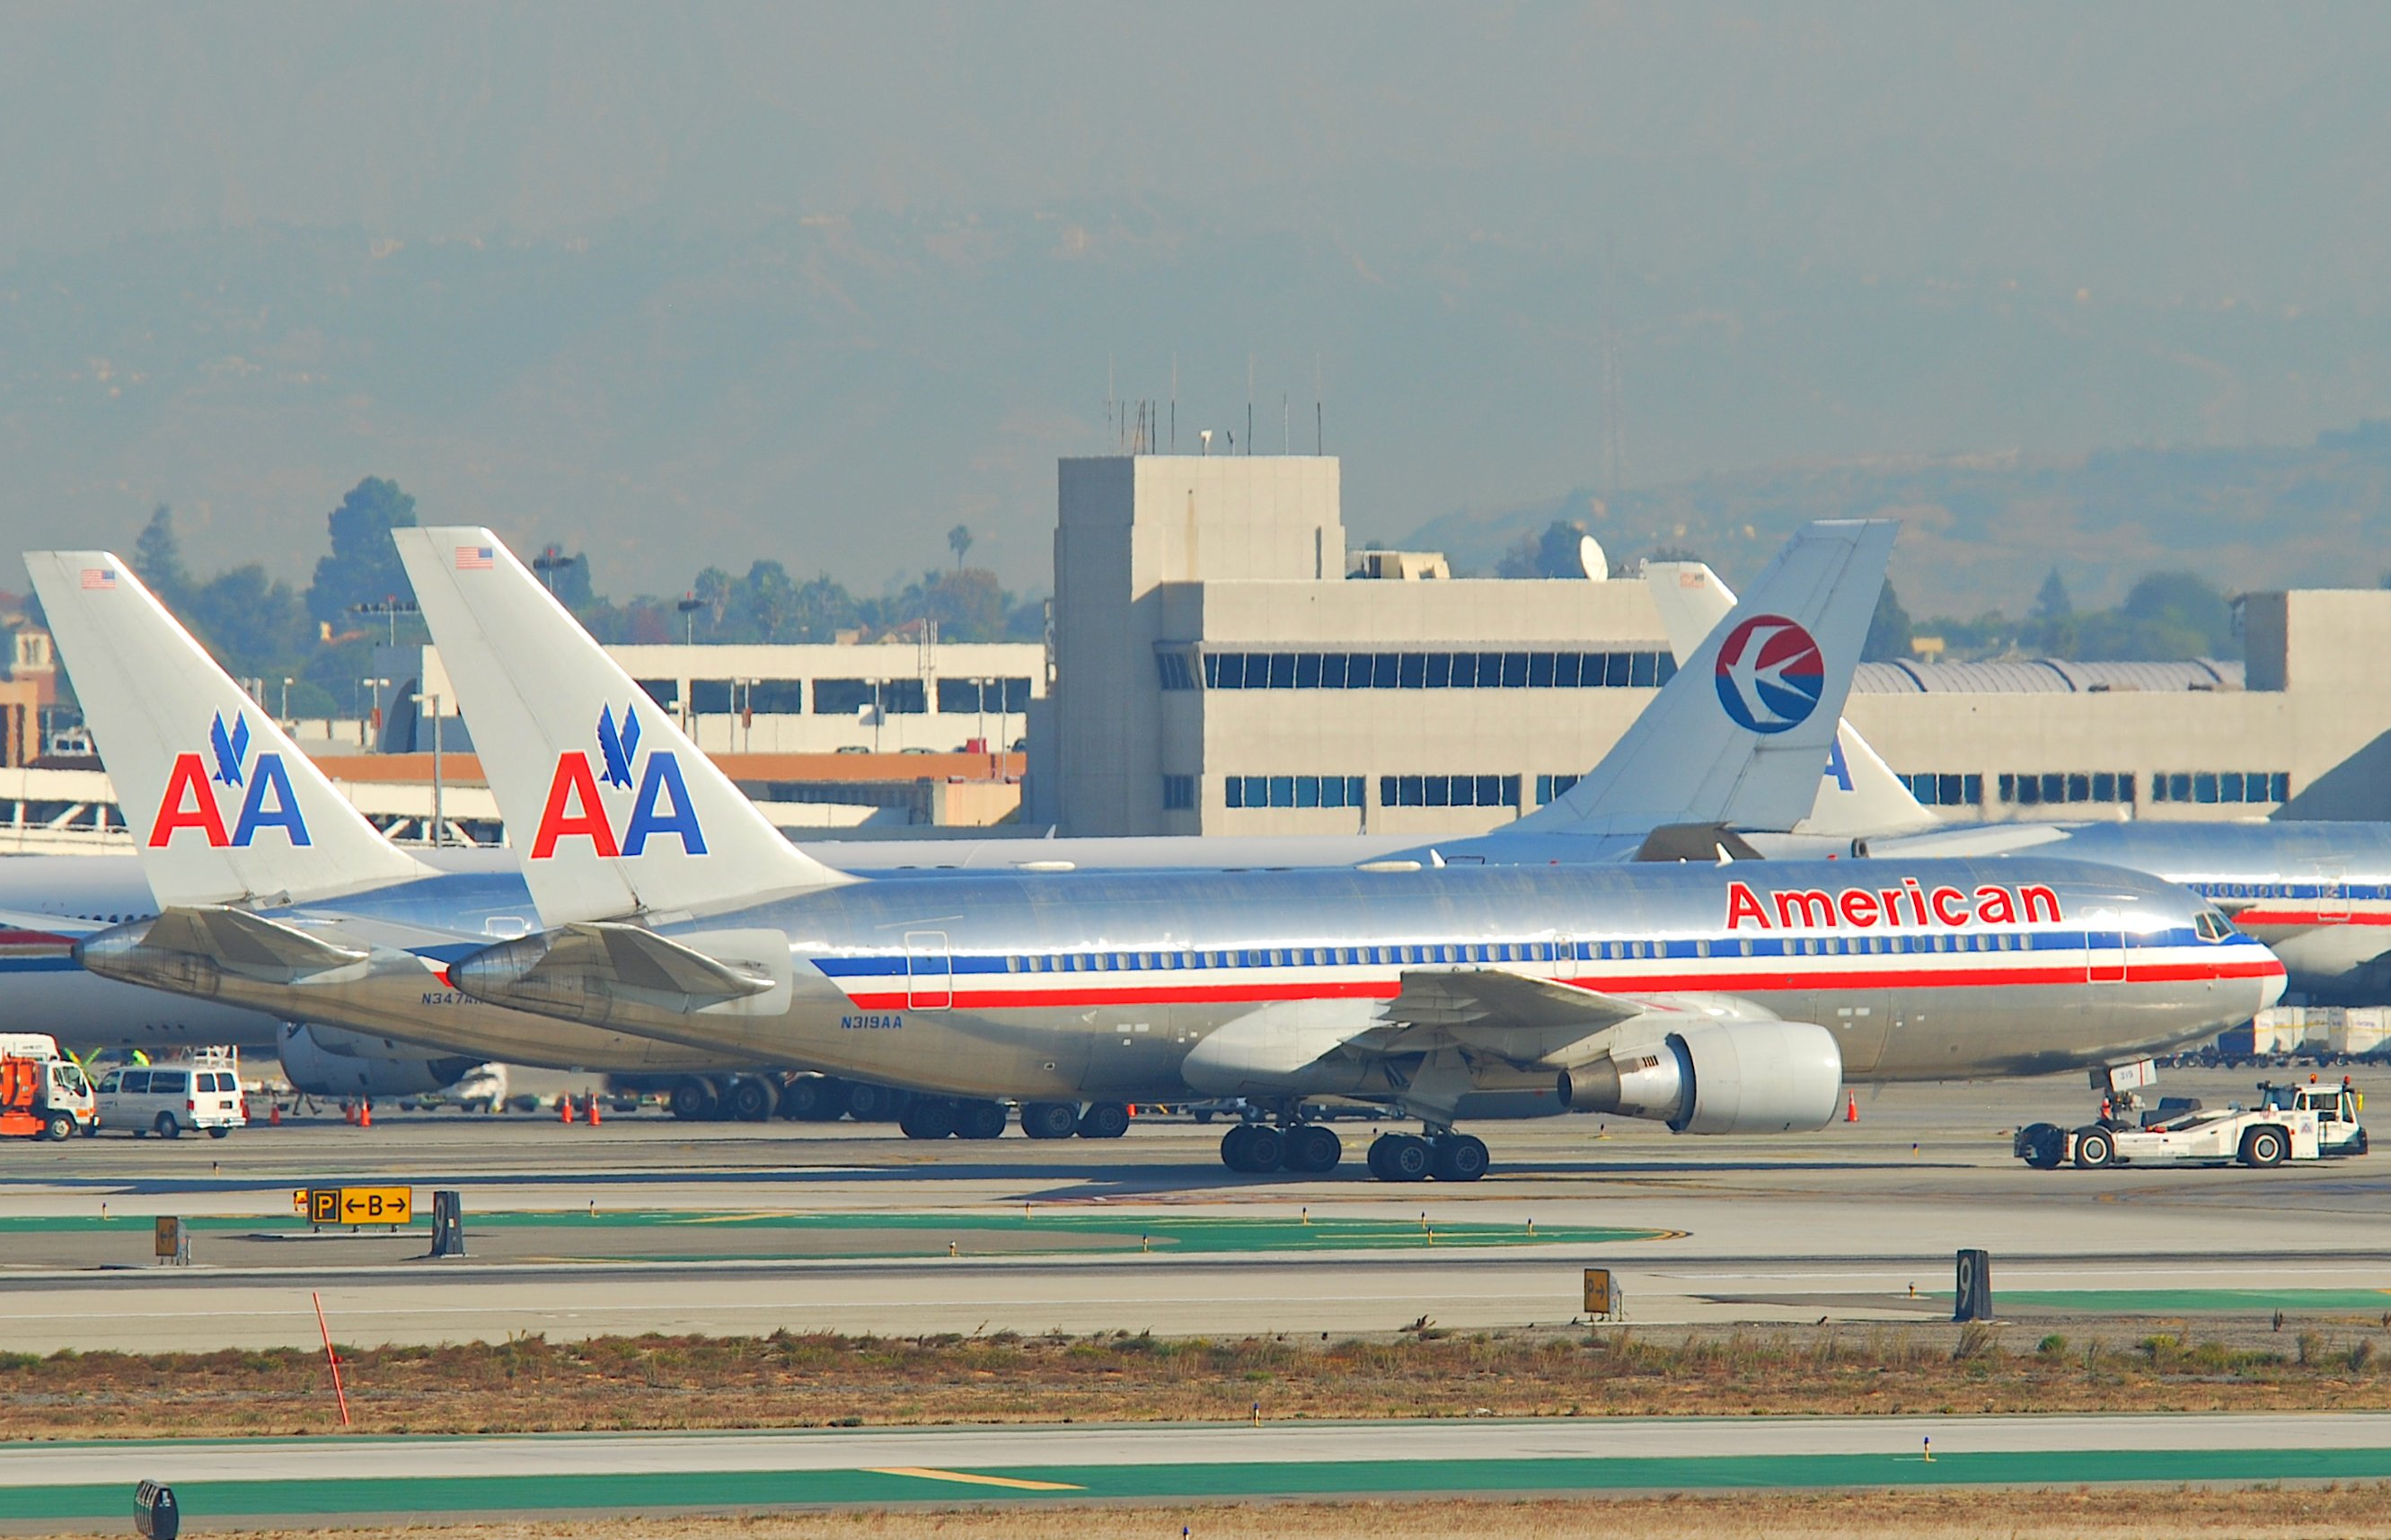 Boeing 767-200 American Airlines images